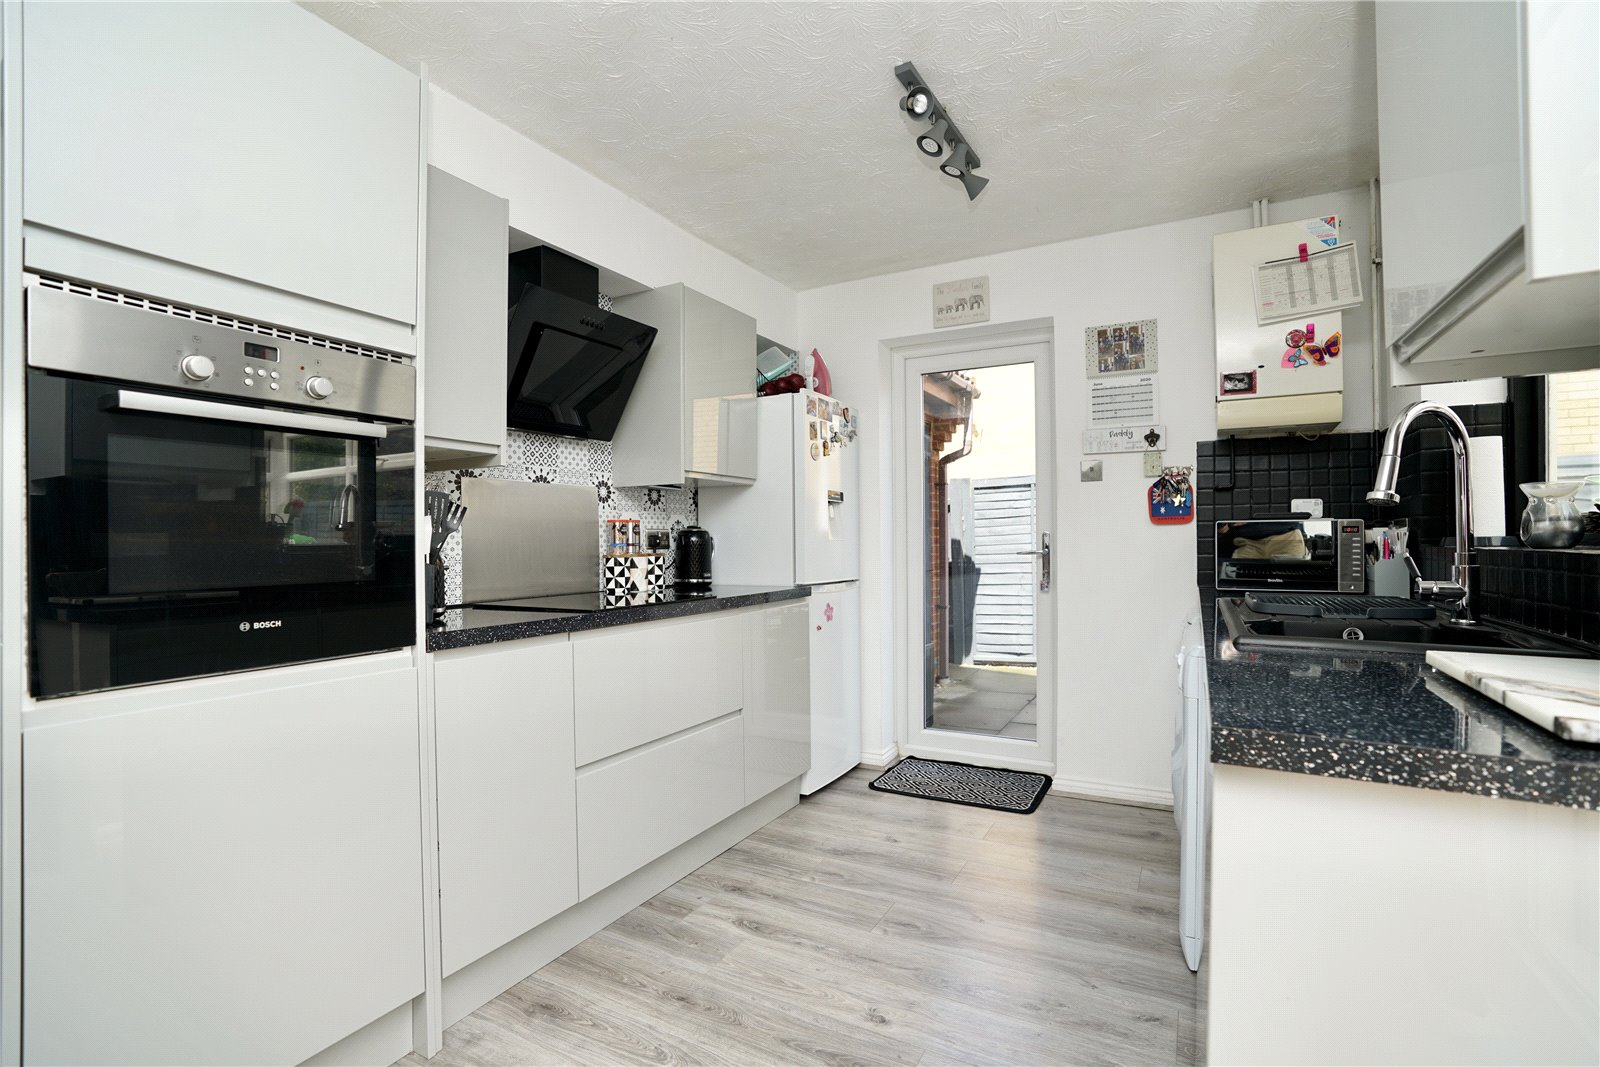 3 bed house for sale in Swift Close, St. Neots  - Property Image 3